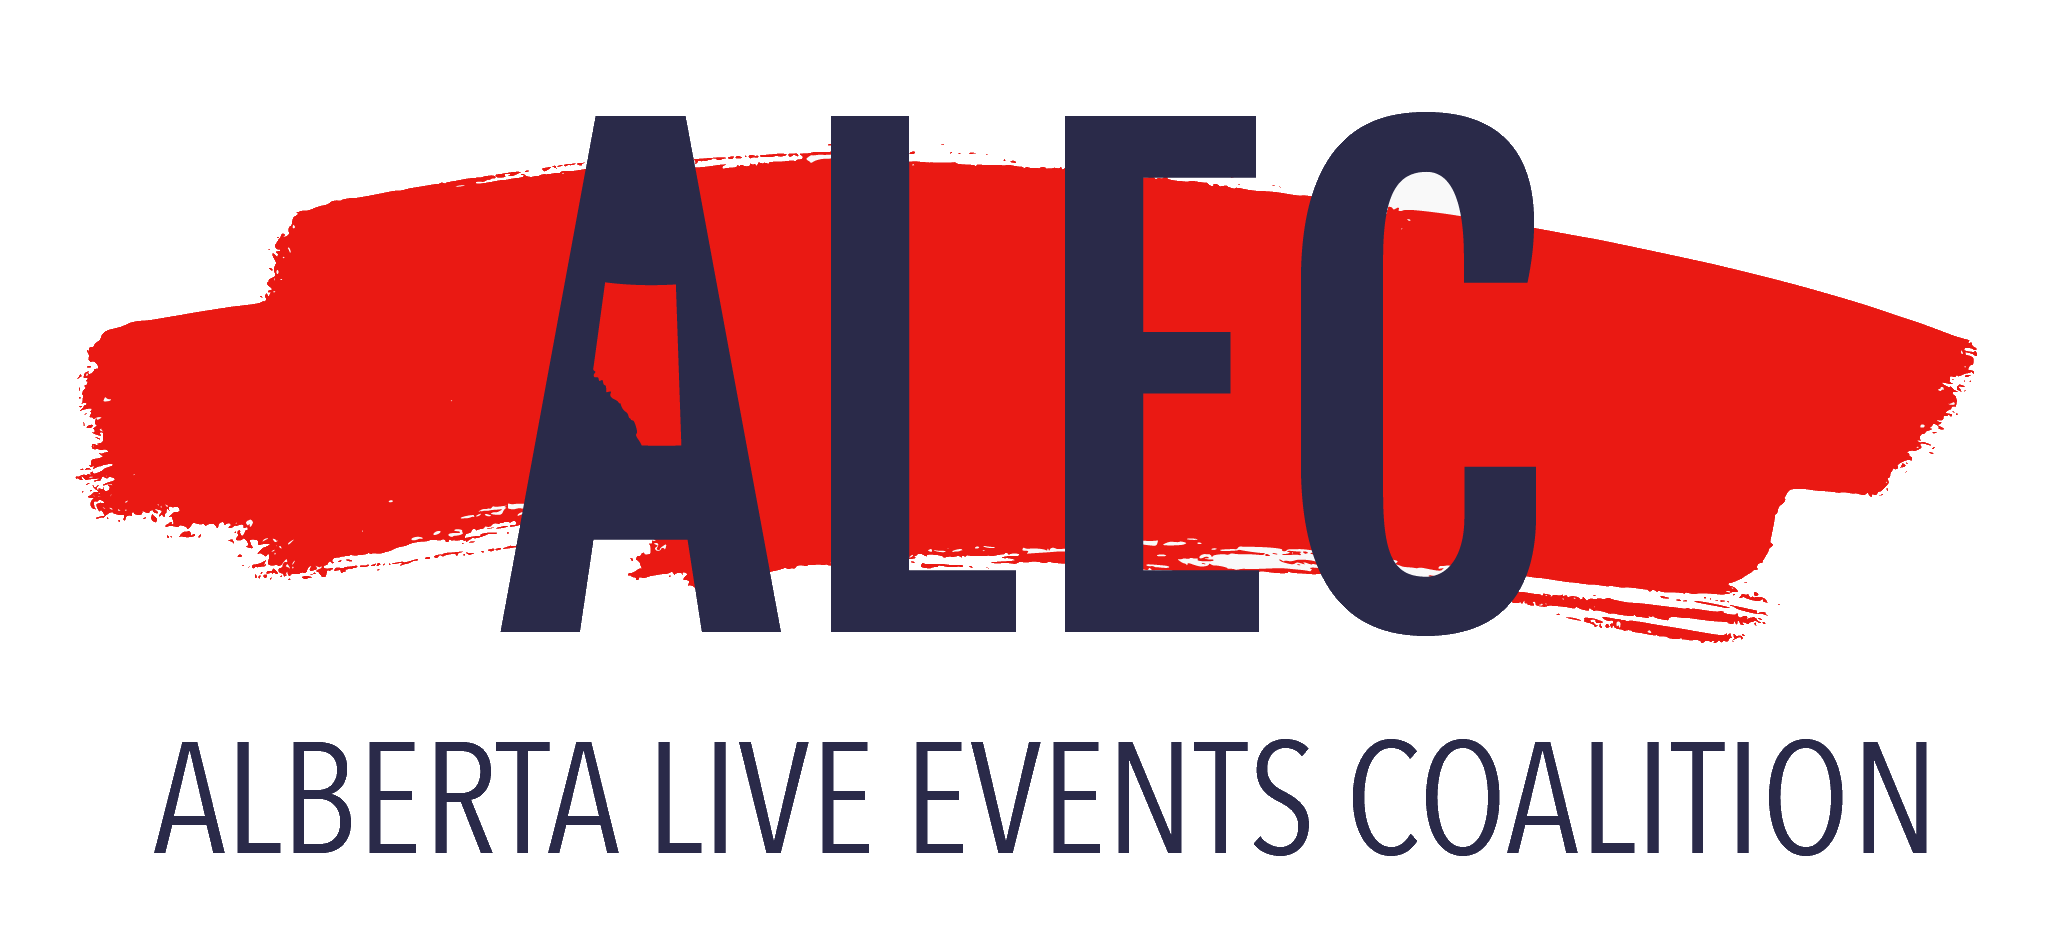 Alberta Live Events Coalition